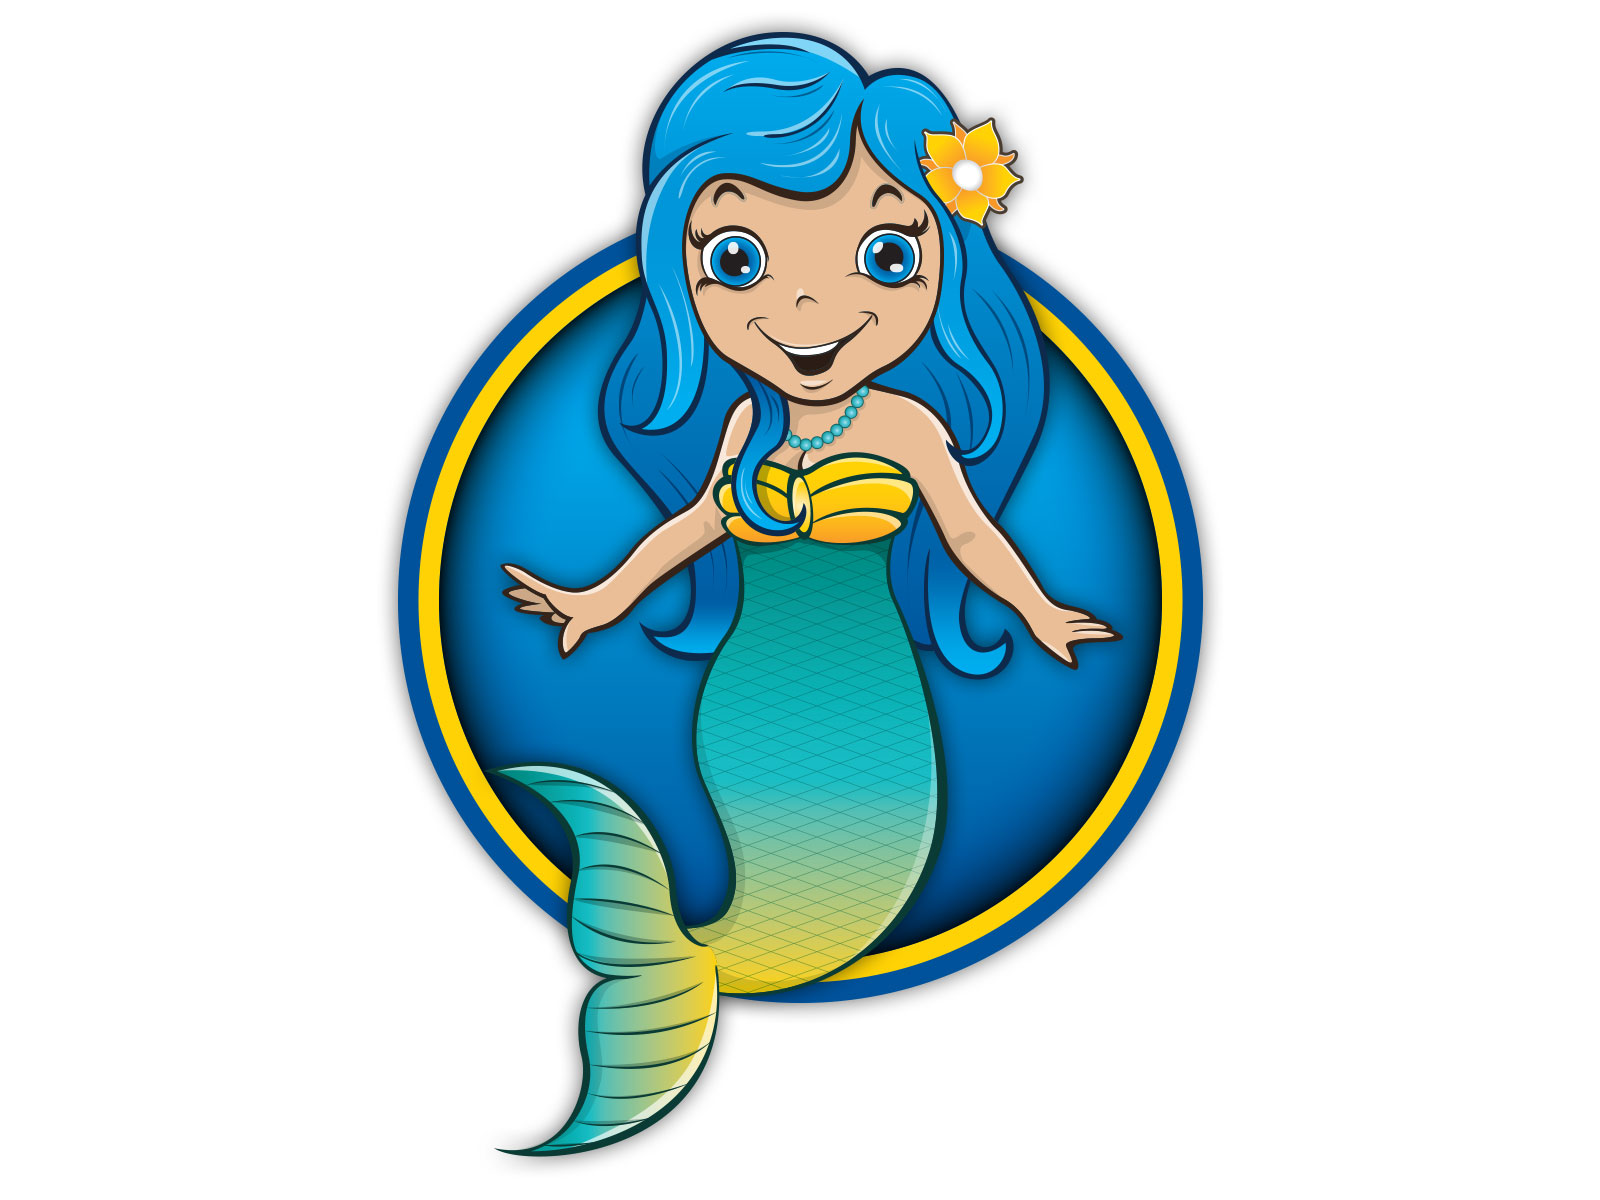 Colourful cartoon style mermaid character illustration for mascot